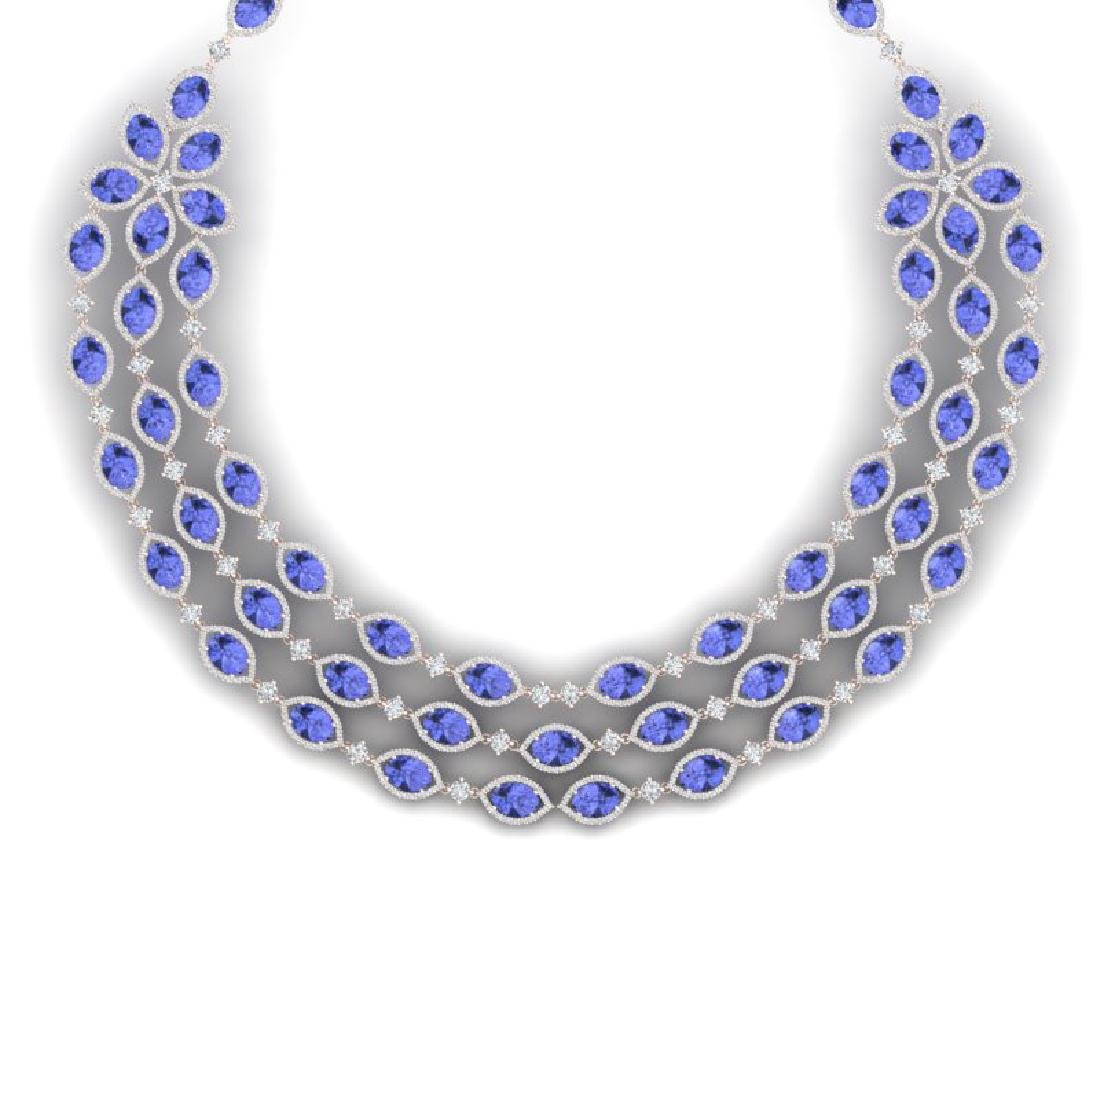 79.33 CTW Royalty Tanzanite & VS Diamond Necklace 18K - 2